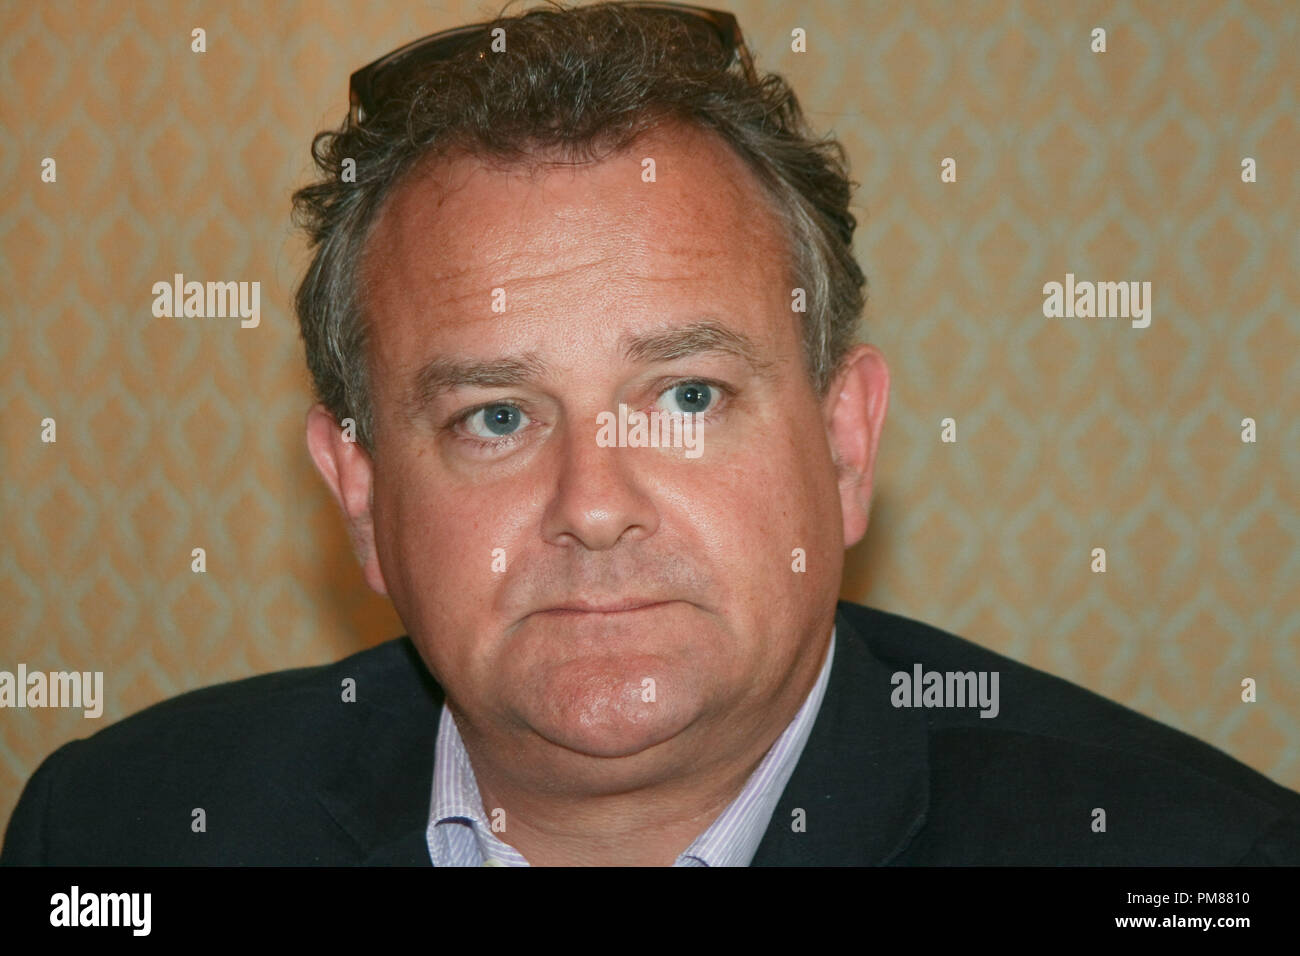 Hugh Bonneville   'Downton Abbey'  Portrait Session, July 22, 2012.  Reproduction by American tabloids is absolutely forbidden. File Reference # 31610_051JRC  For Editorial Use Only -  All Rights Reserved - Stock Image